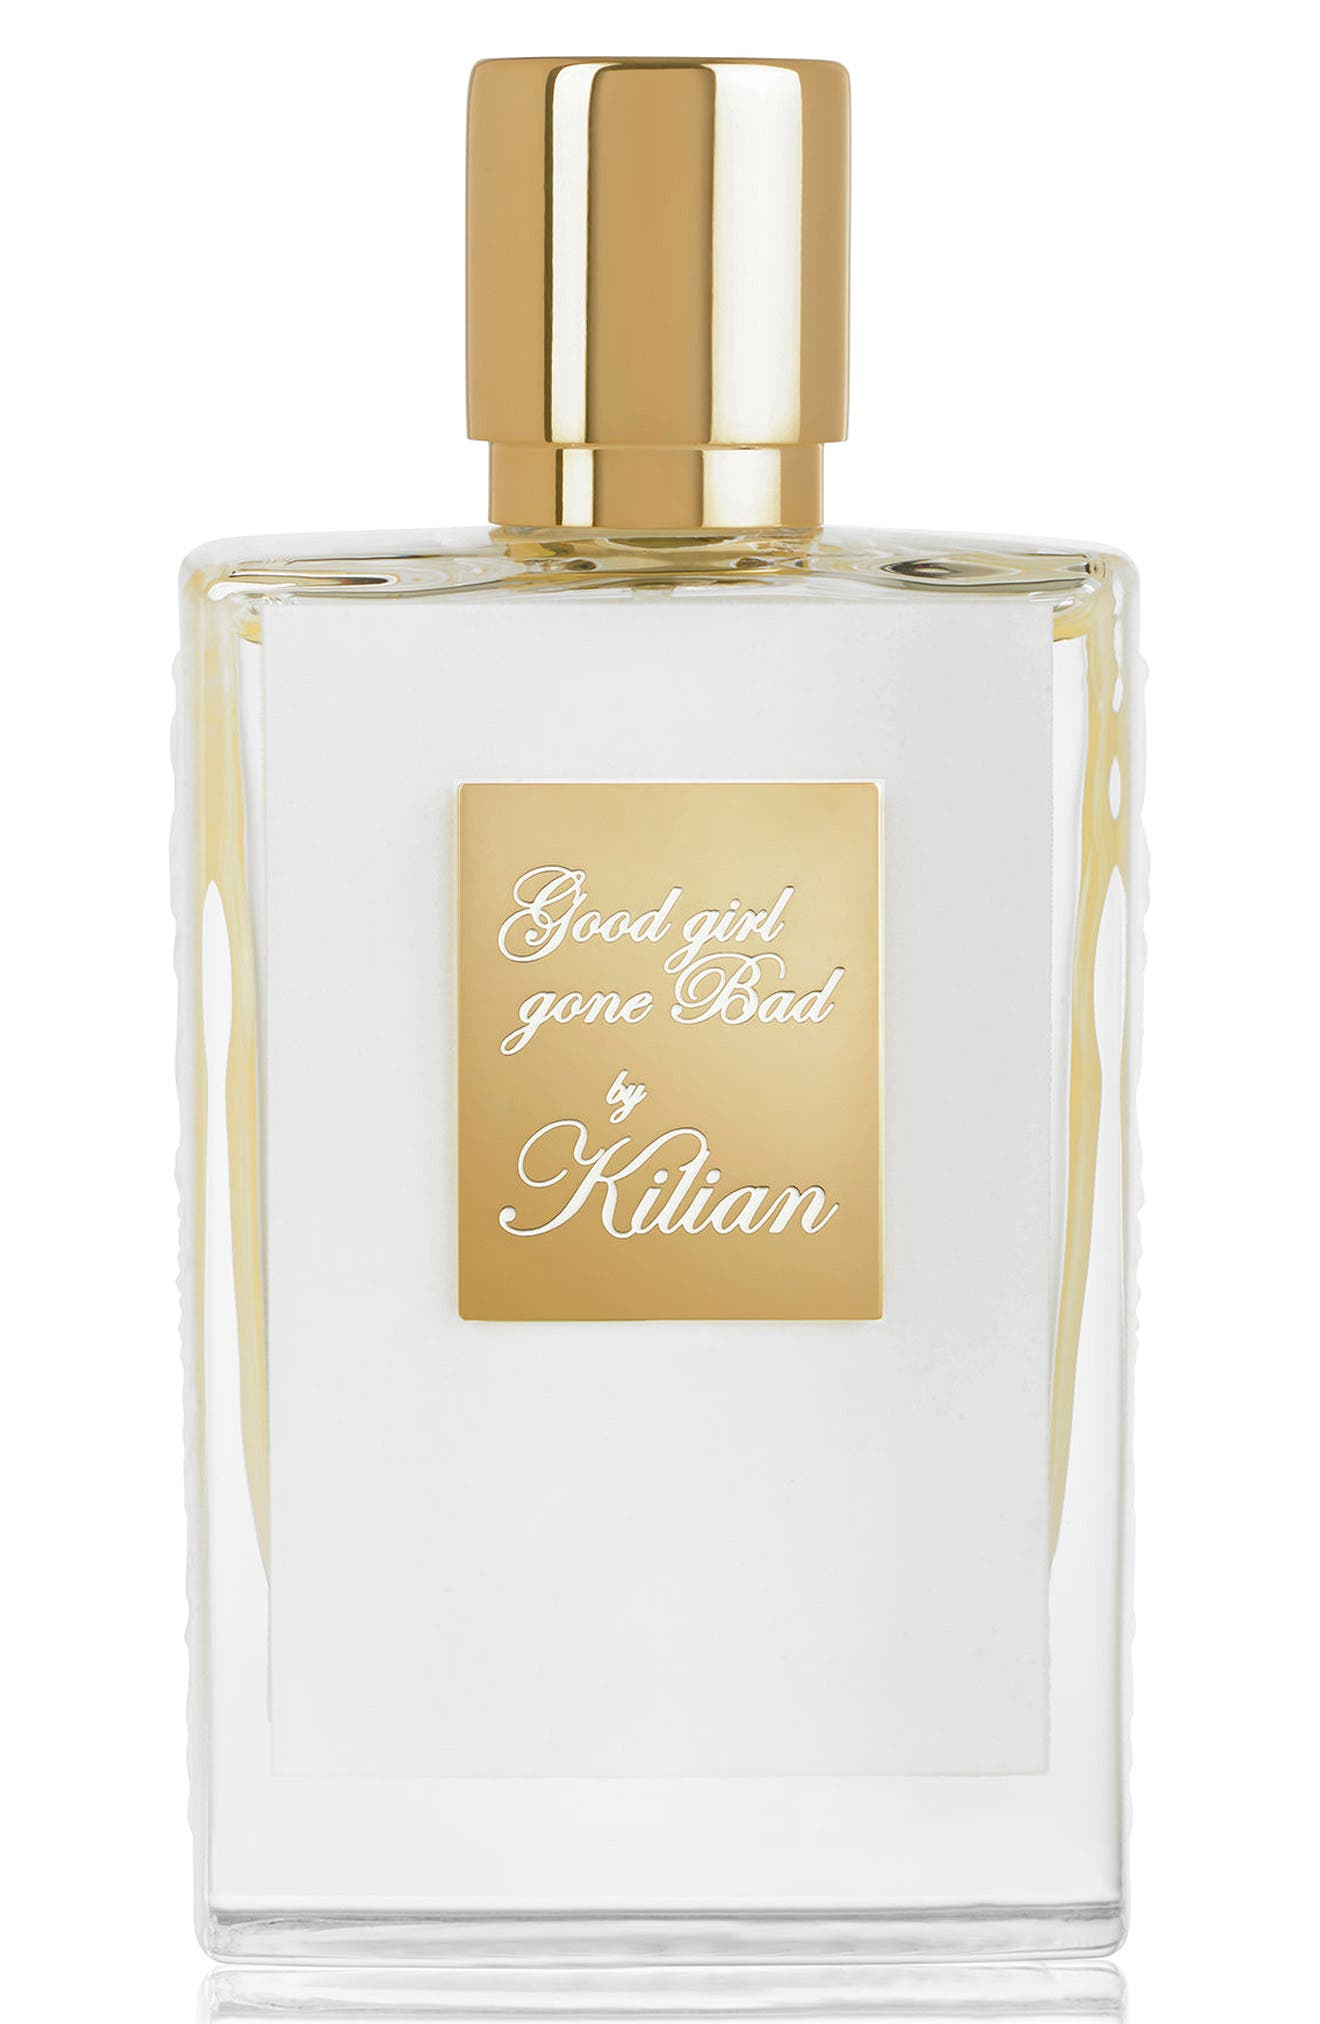 KILIAN In the Garden of Good and Evil Good girl gone Bad Refillable Fragrance Spray, Main, color, NO COLOR